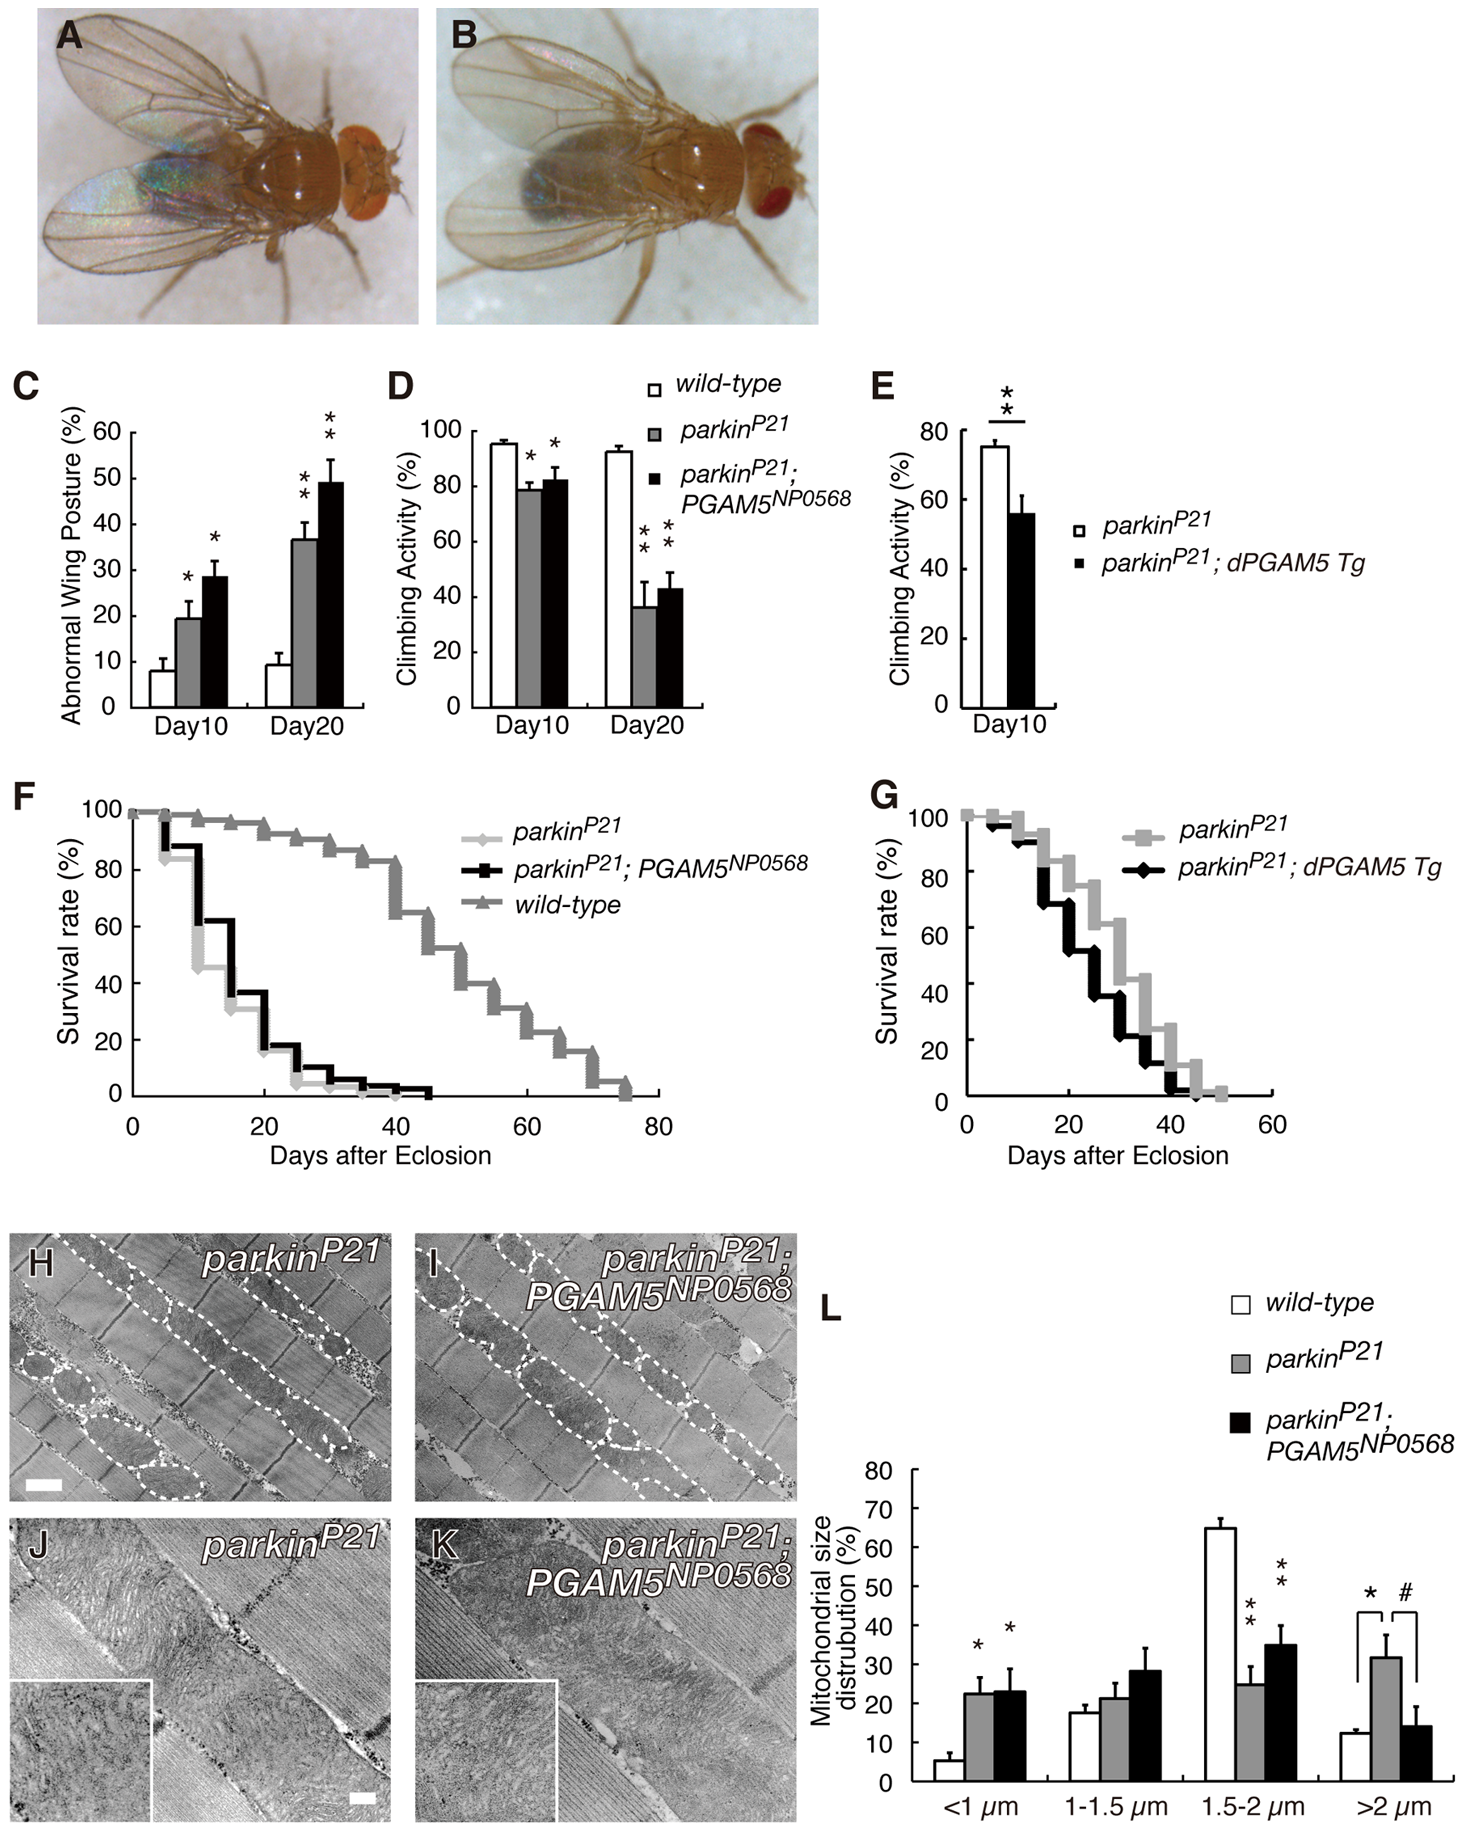 Disruption of <i>dPGAM5</i> fails to suppress the mitochondrial phenotype caused by <i>dParkin</i> inactivation in <i>Drosophila</i>.